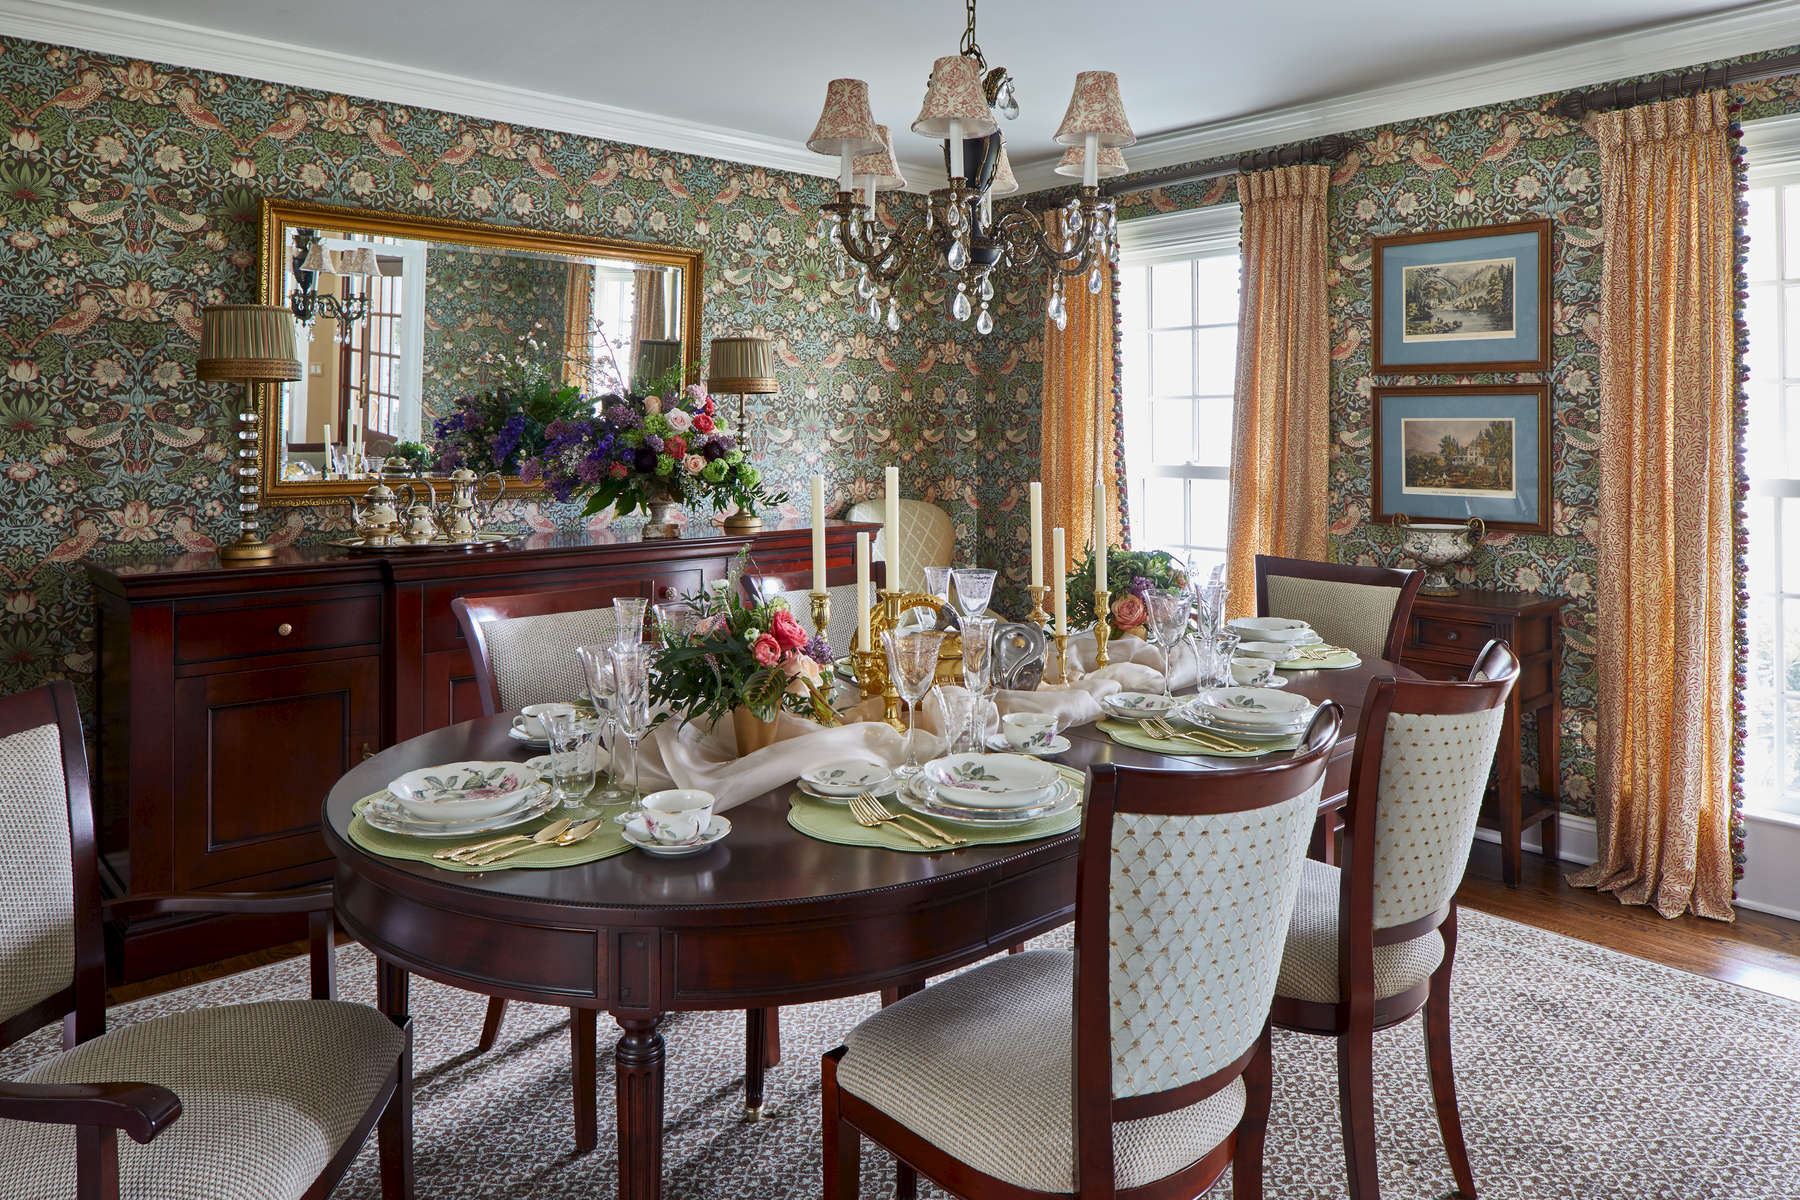 william and morris wallpaper strawberry theif in formal dining room